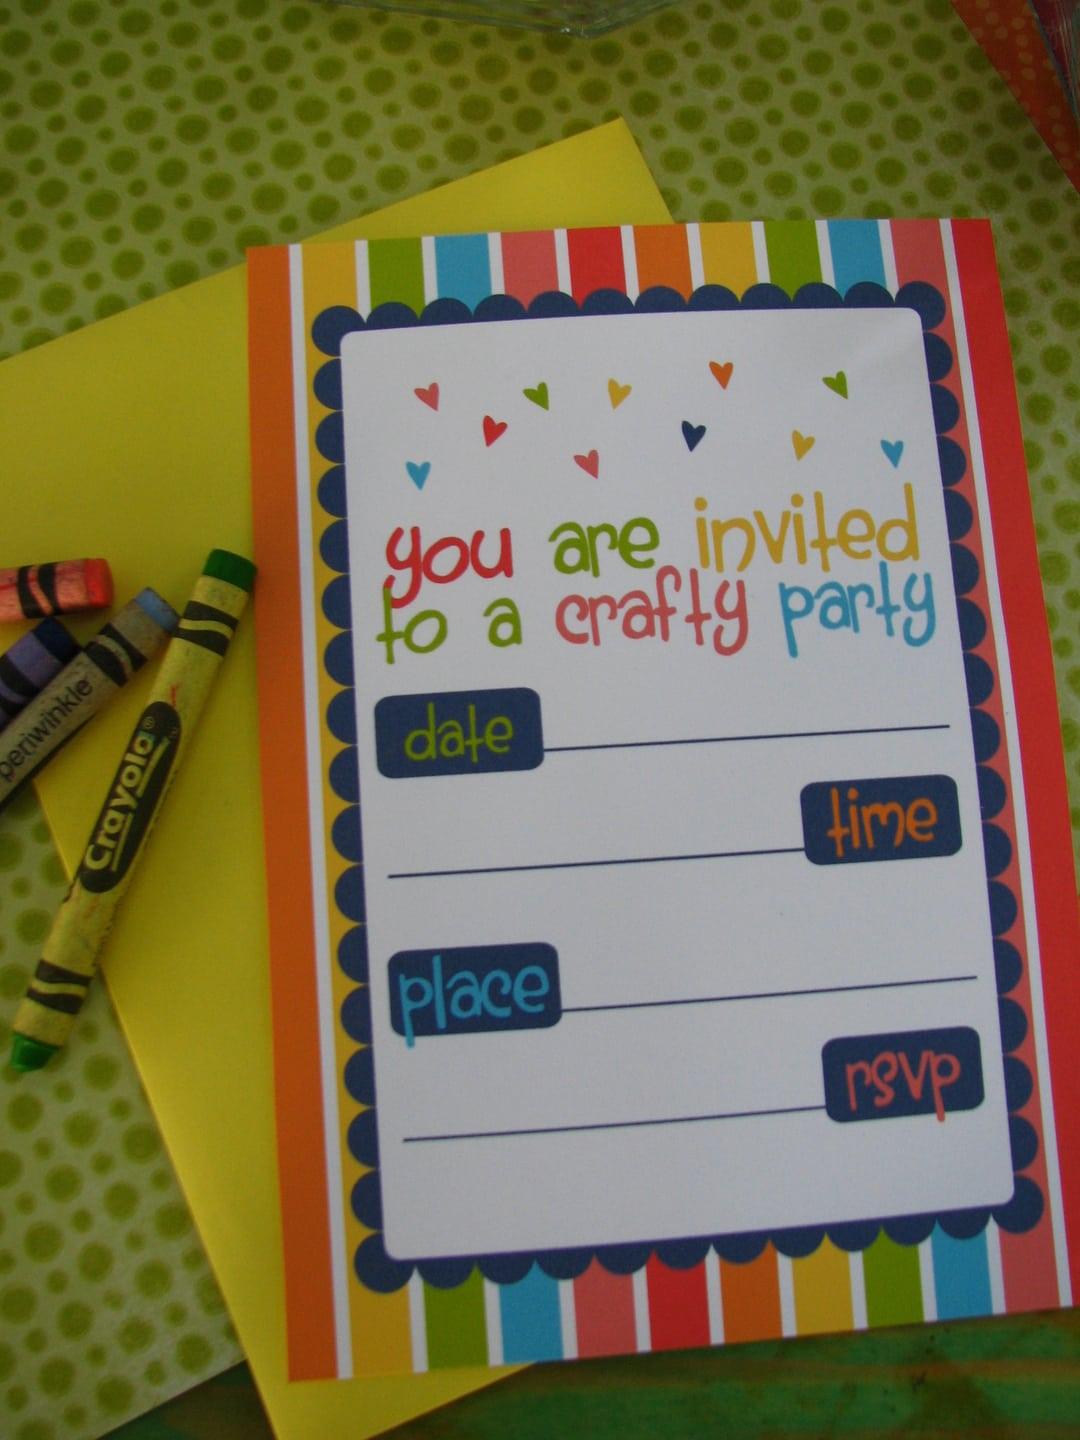 Free Arts & Crafts Party Printables From Sugarsticks Parties